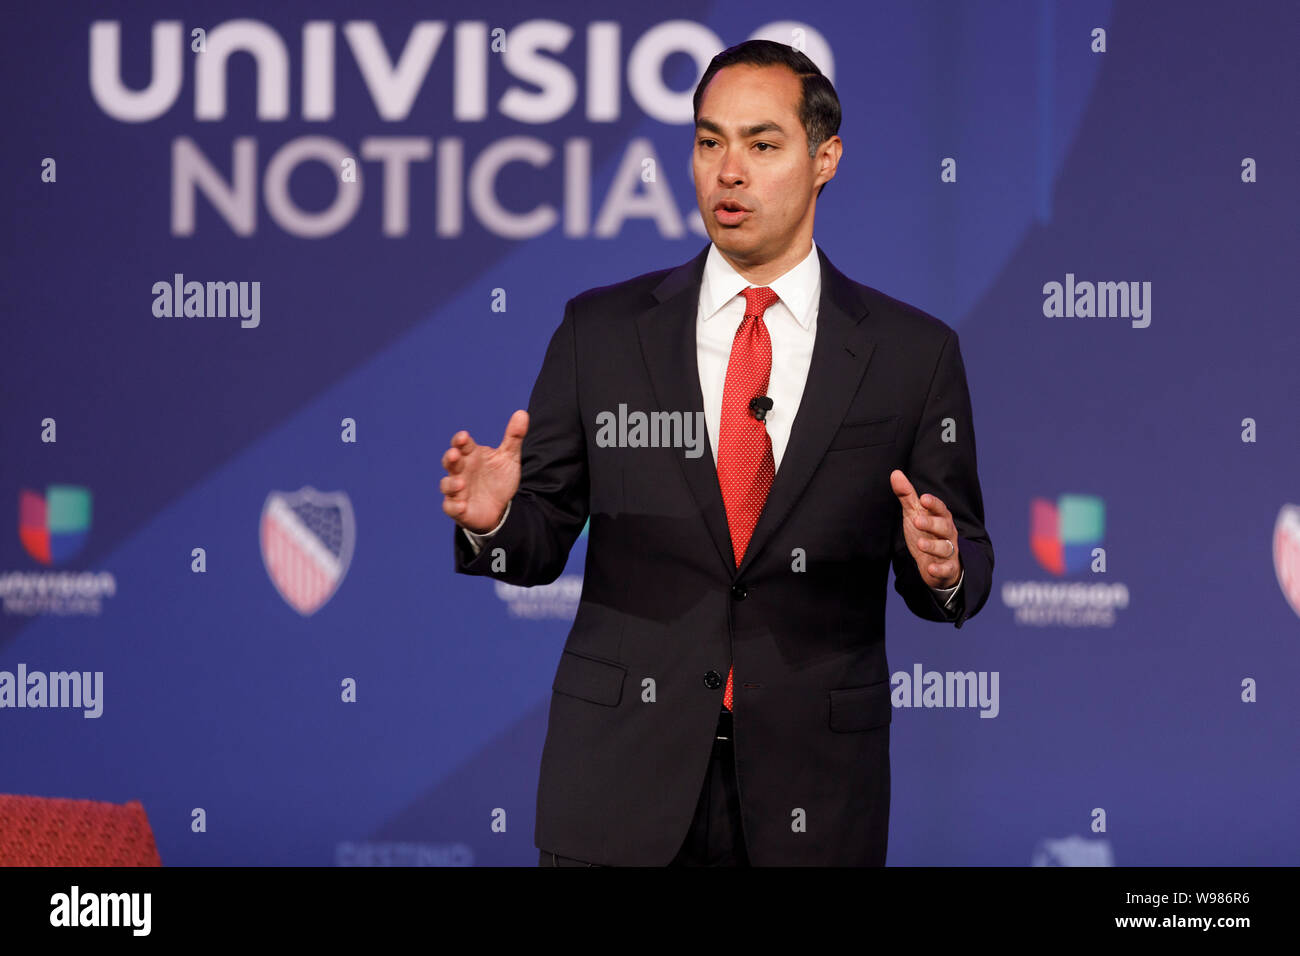 Julian Castro, former secretary of Housing and Urban Development (HUD) and 2020 Democratic presidential candidate, speaks at an event Stock Photo